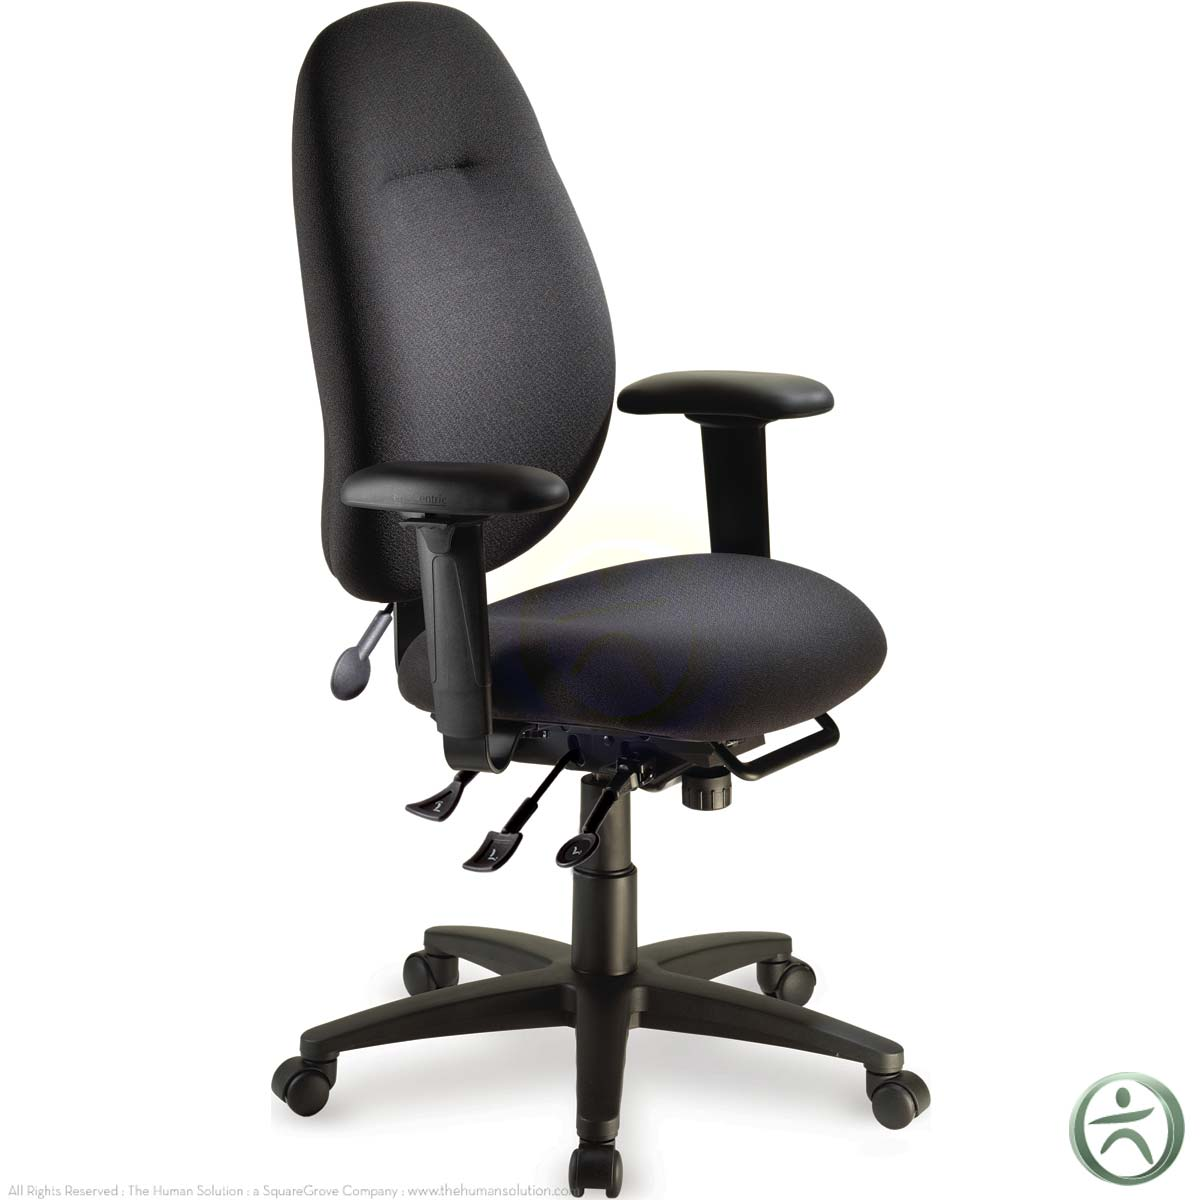 Ergonomic Office Chairs Ergocentric Ecentric Ergonomic Office Chair Shop